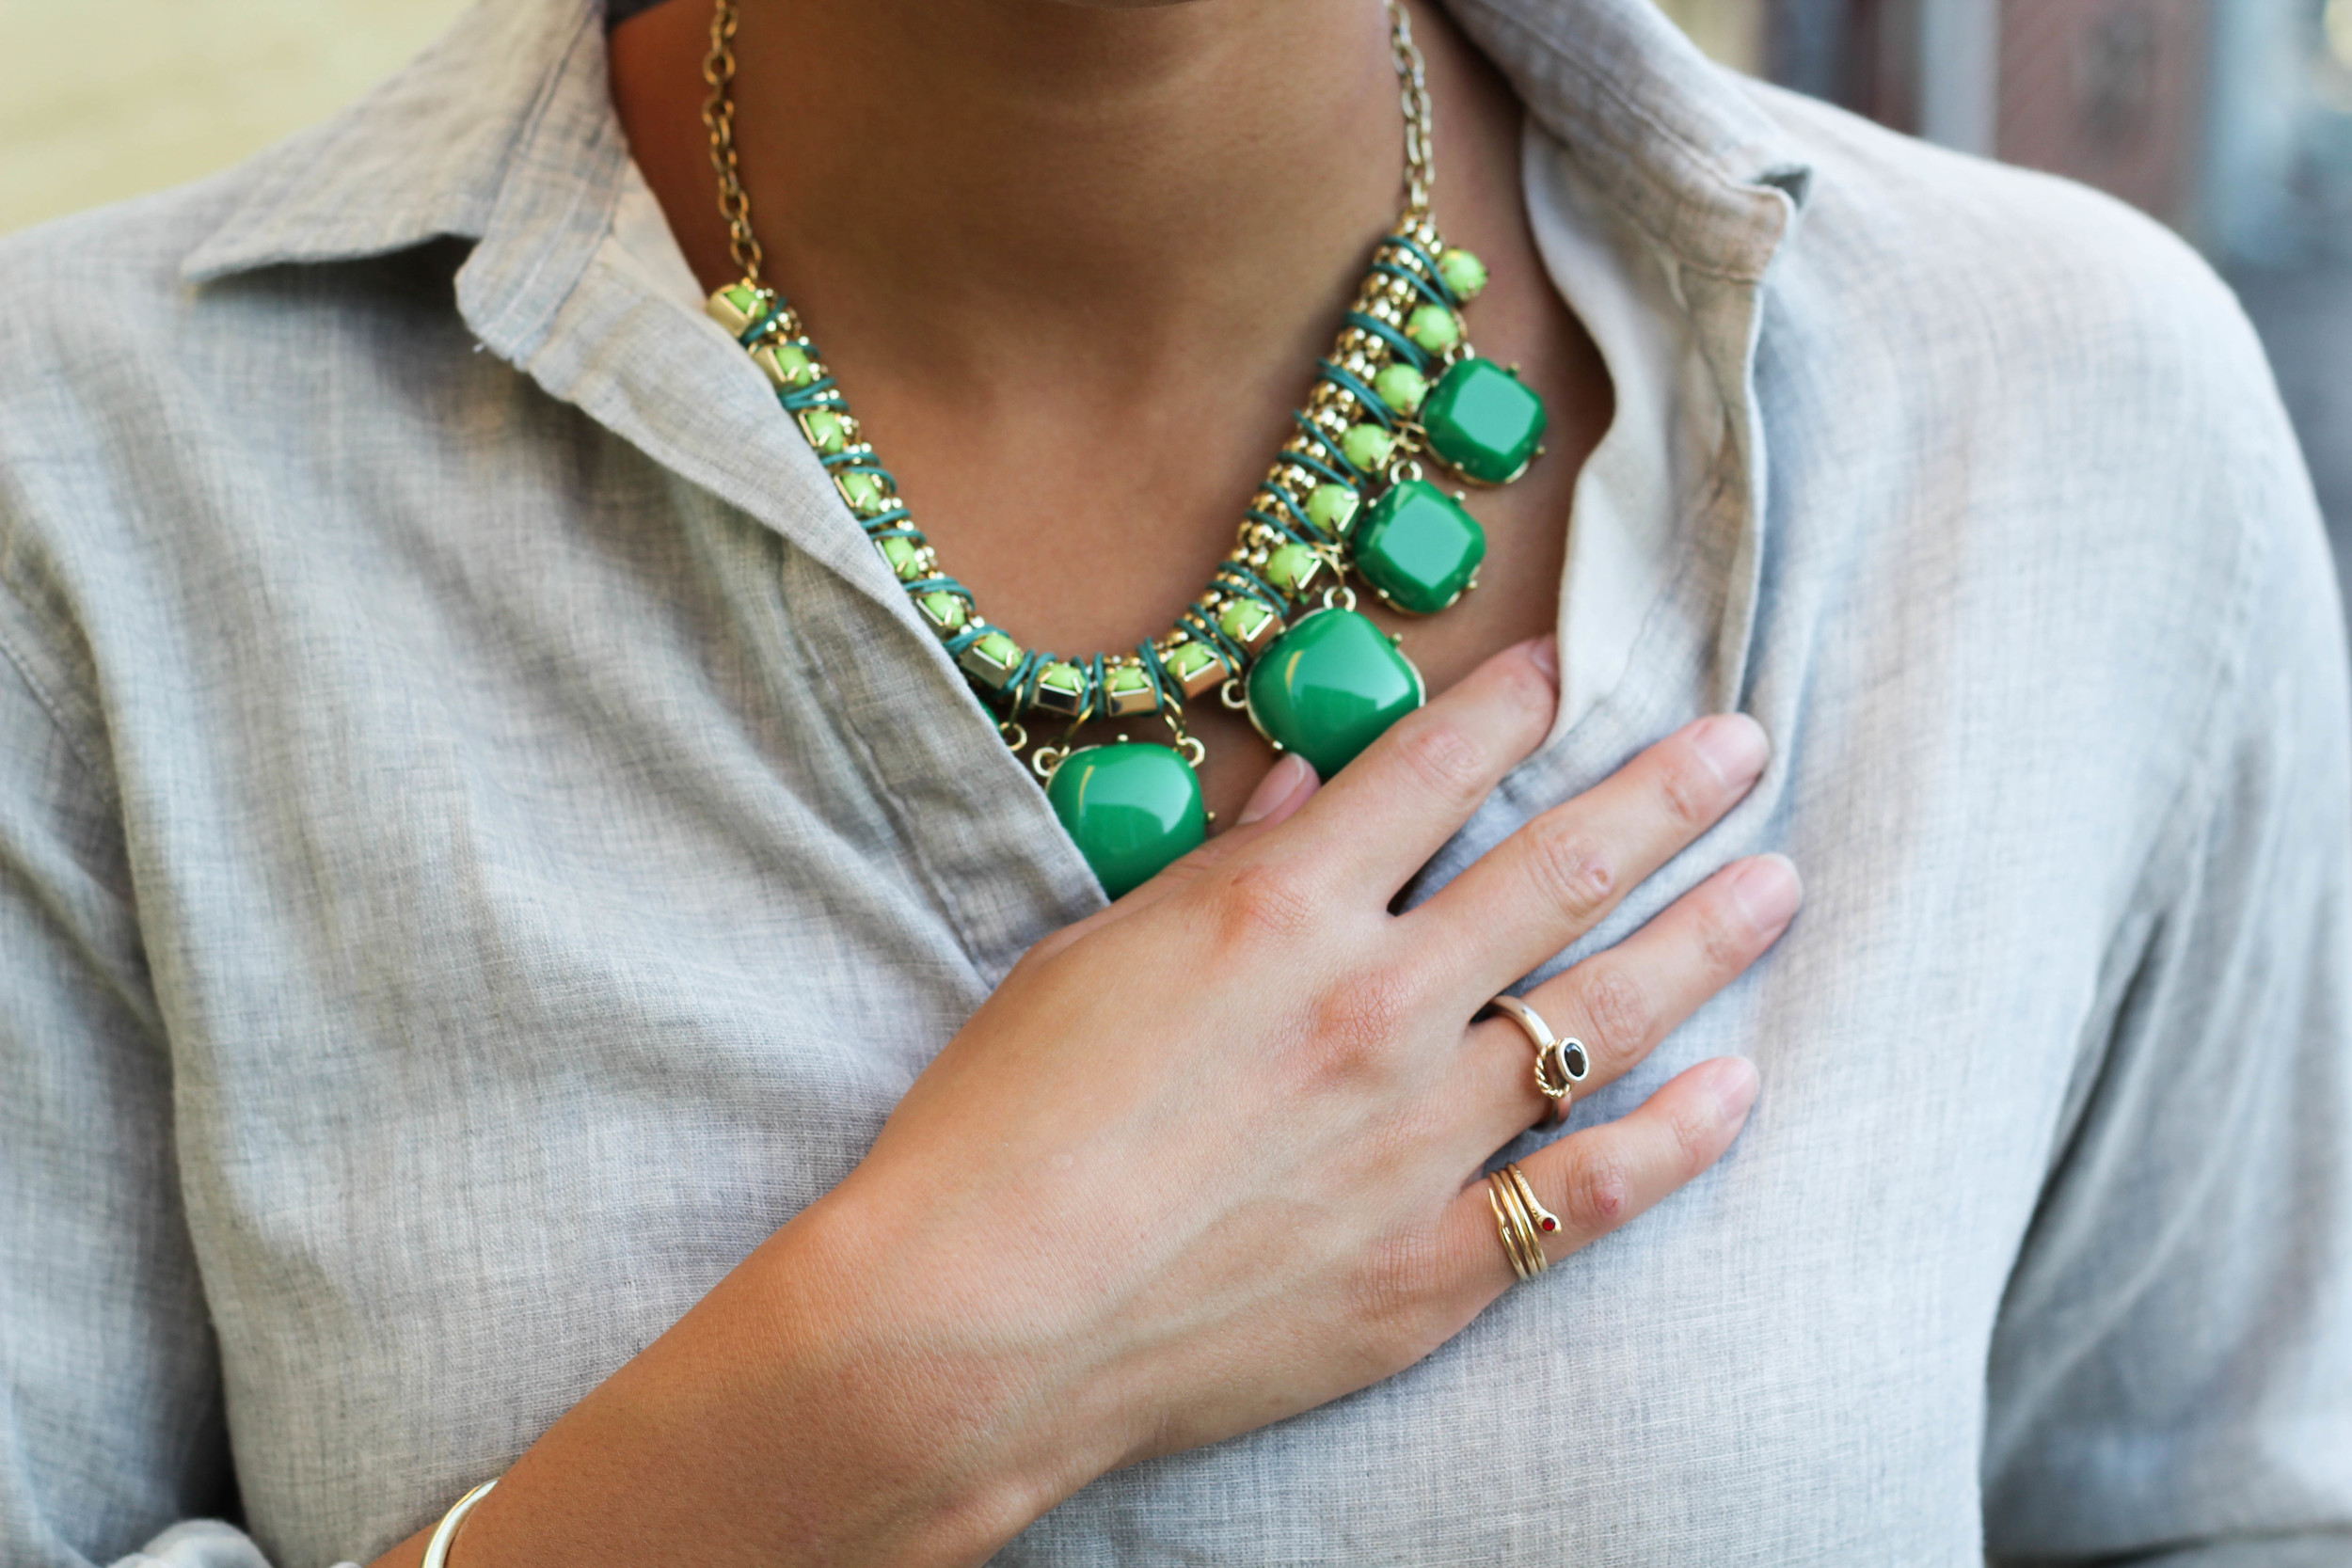 This Necklace is the flare of color that this outfit thrives on. The neutral white and grey colors of the clothing leave room for a statement piece to be thrown in the mix. In this case, it's a chunky, green, and bold necklace. The contrast of the bright against the neutral is a very flattering combination! I also love how the necklace has hints of gold that match with the rings and bracelet. Details, details, and more details!